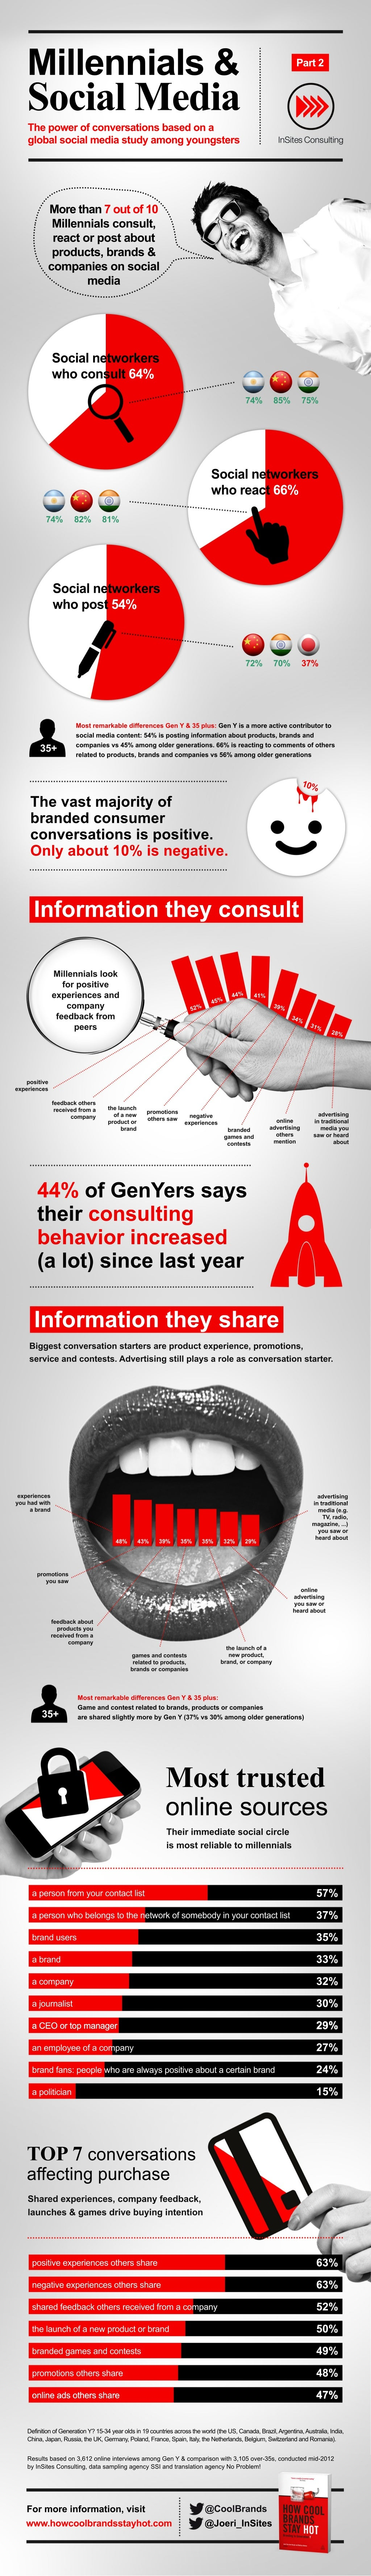 Millennials and Social Media: The power of conversations - infographic